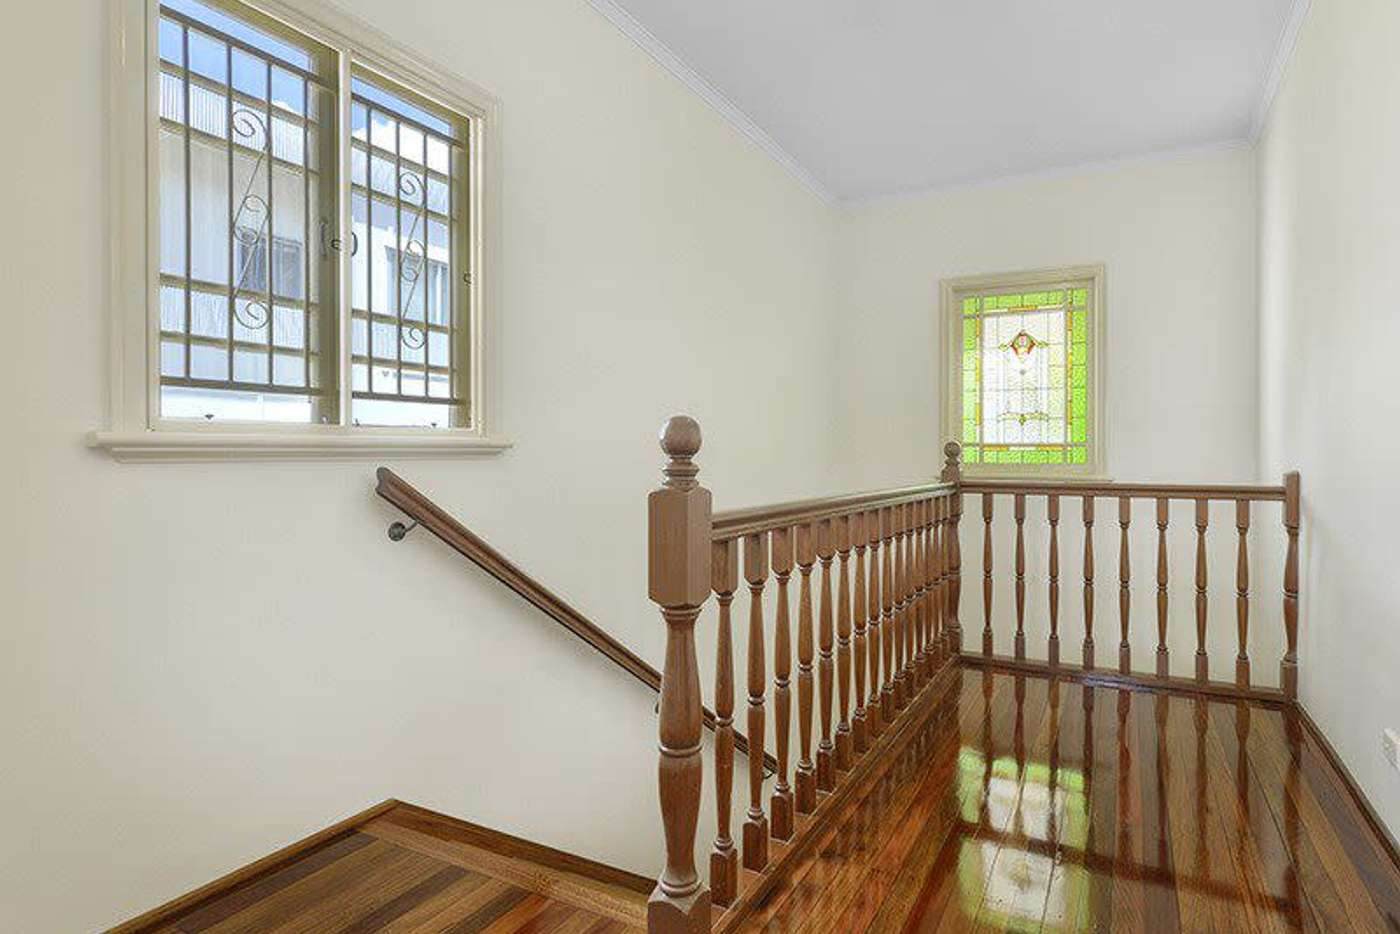 Sixth view of Homely house listing, 9 Yarradale Street, Newmarket QLD 4051